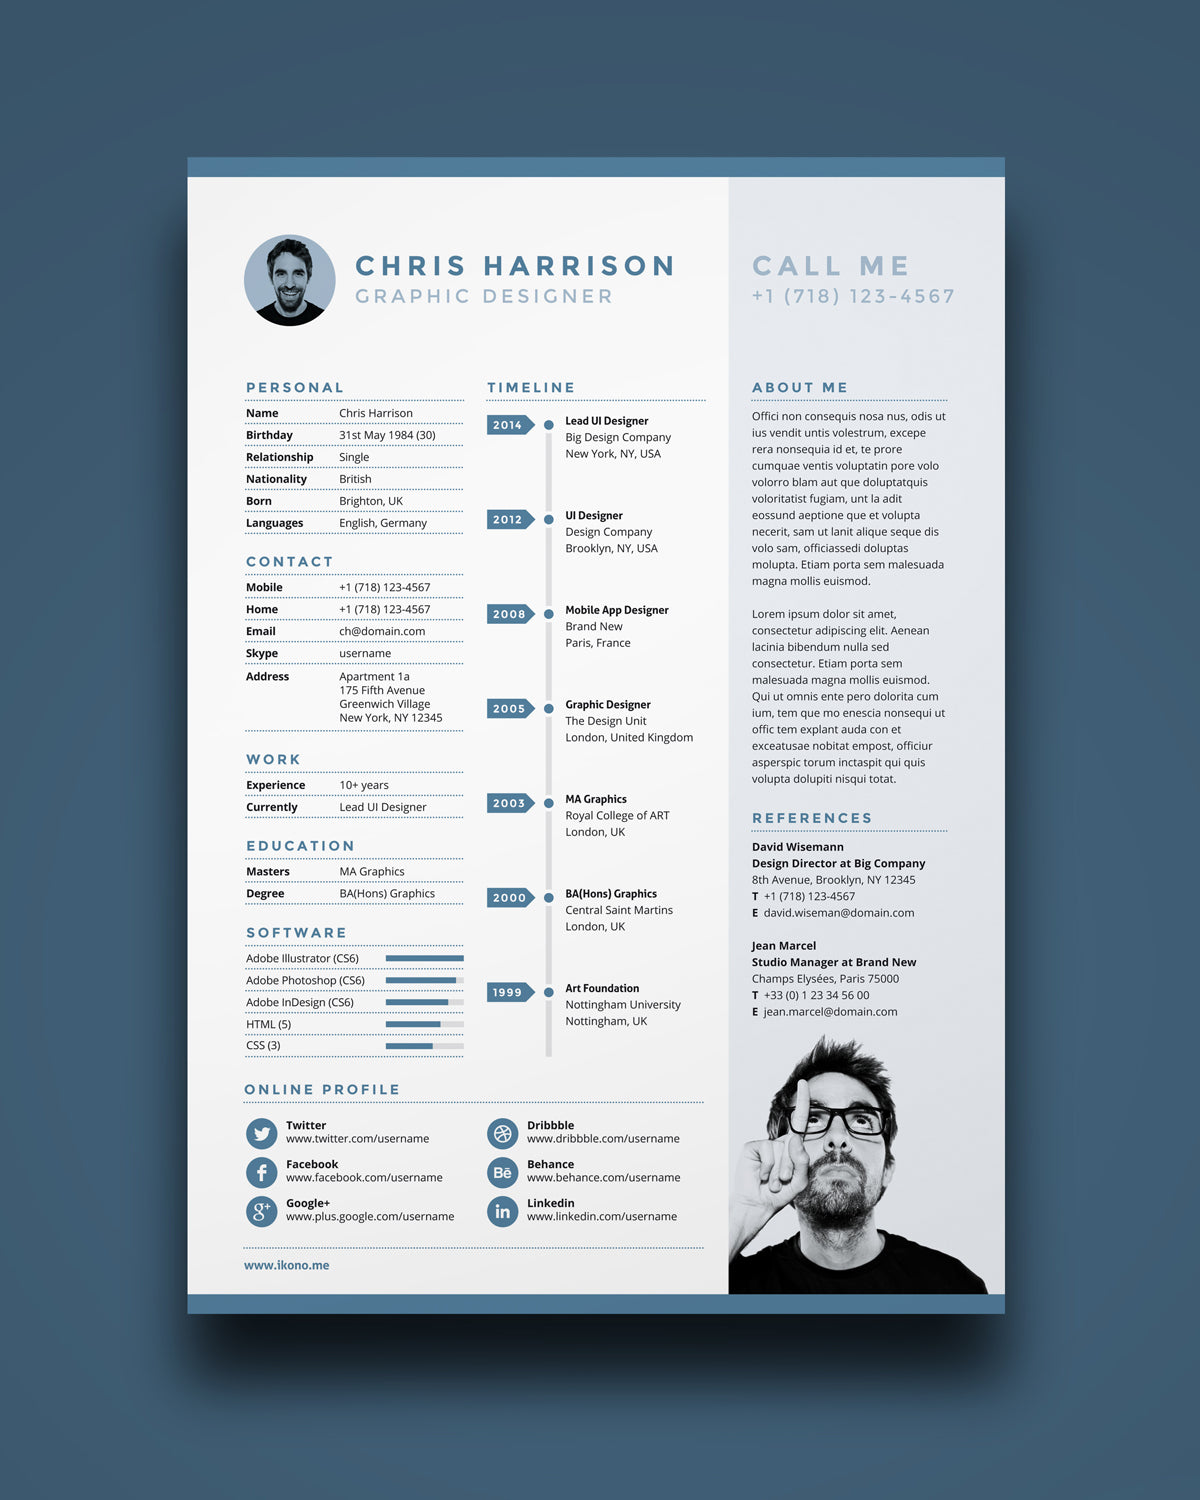 free resume template in photoshop psd illustrator ai and indesign formats